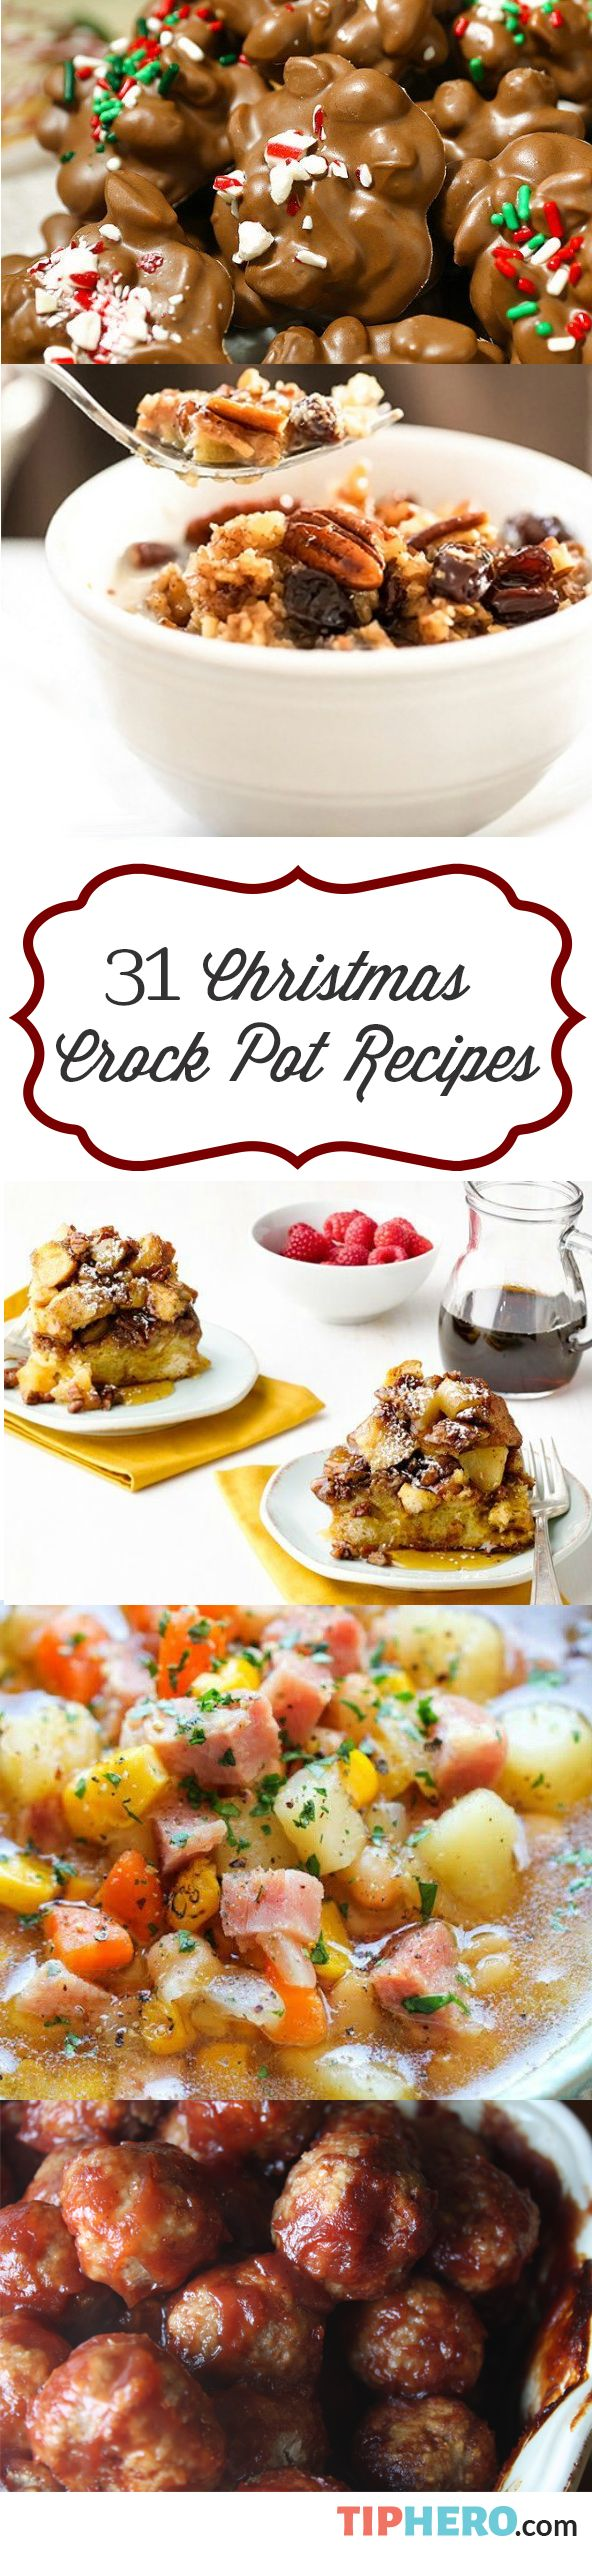 31 Christmas Crock Pot Recipes | This collection of holiday recipes from brunch to appetizers to sides to mains to dessert will help you spend less time in the kitchen and more time celebrating with family! #easyrecipes